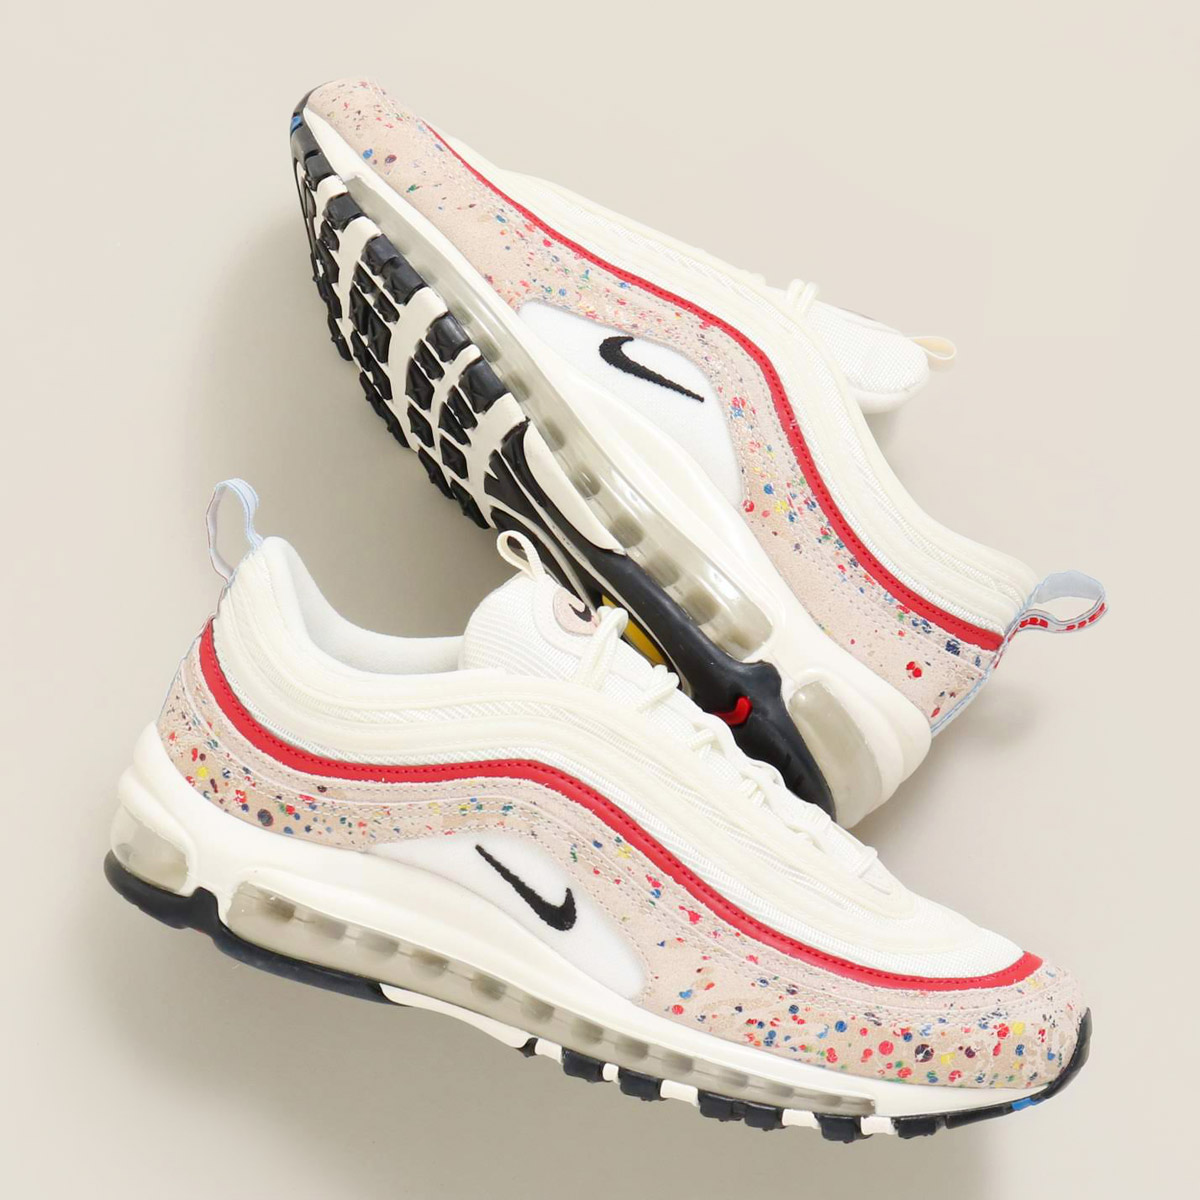 best service 4f628 50736 Categories. « All Categories · Shoes · Men s Shoes · Sneakers · NIKE AIR  MAX 97 PREMIUM ...